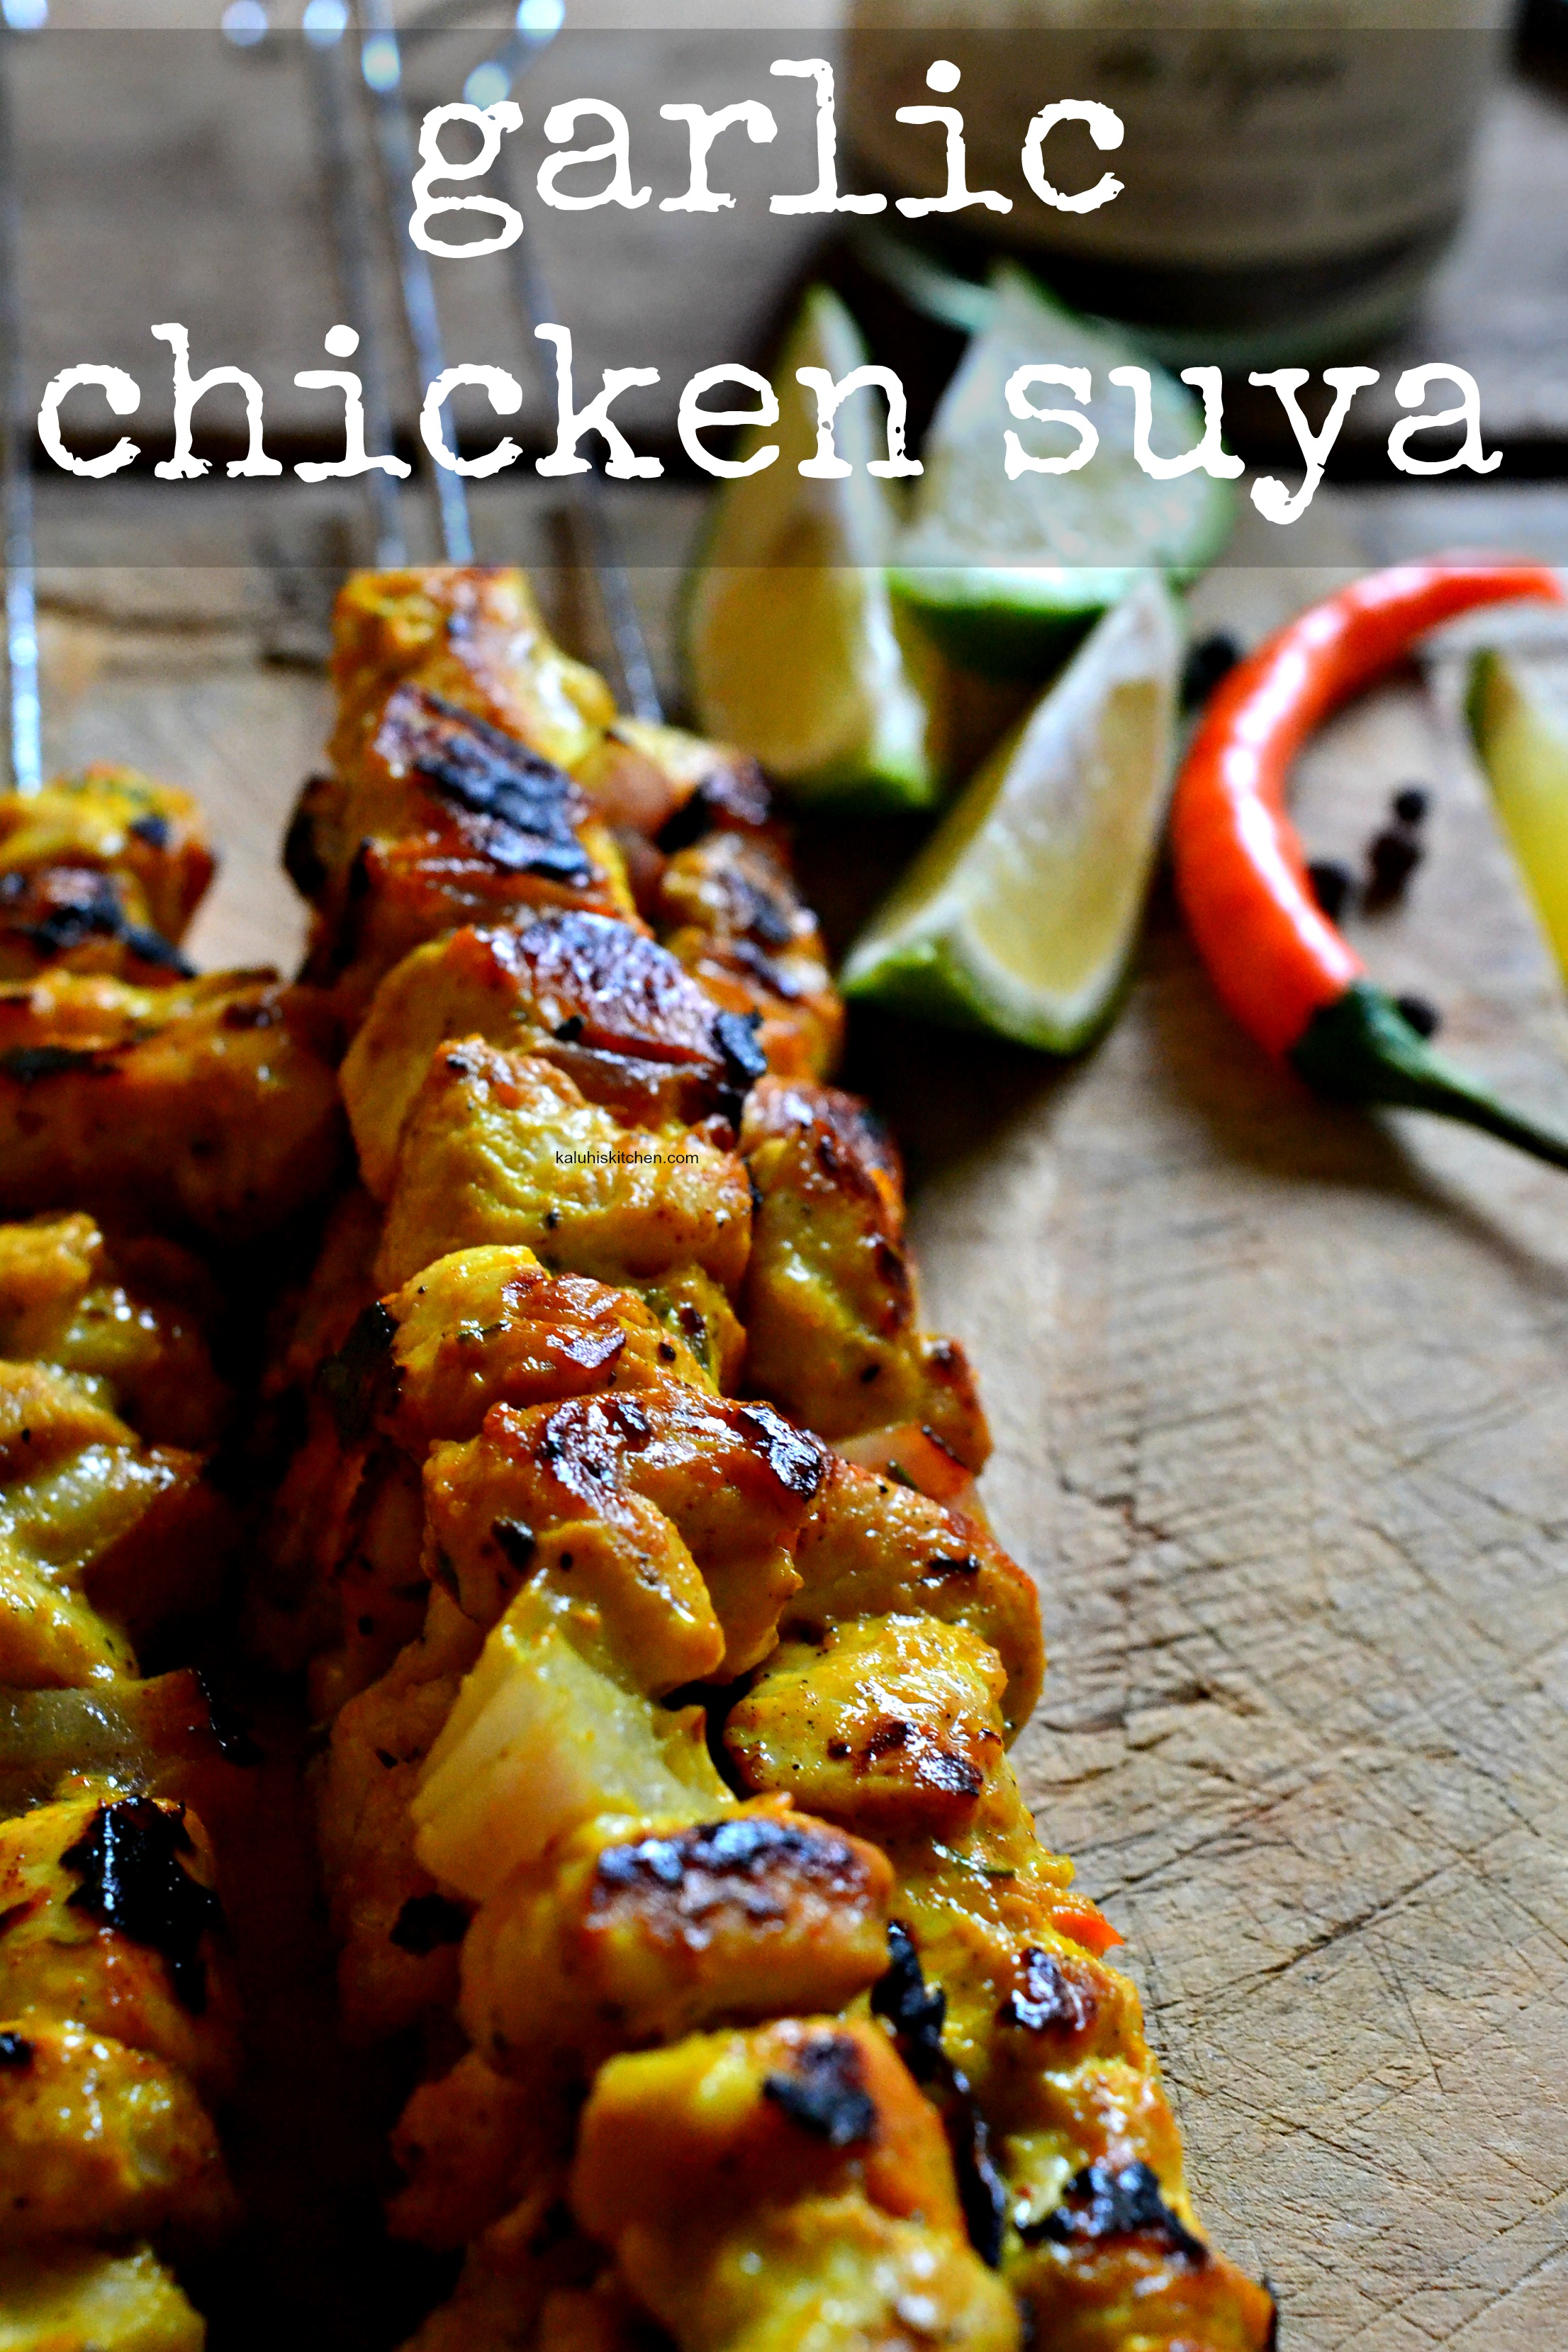 garlic-chicken-suya_suya-recipes_chicken-recipes_west-african-food_african-food_african-food-bloggers_best-african-blogs_kaluhiskitchen-com